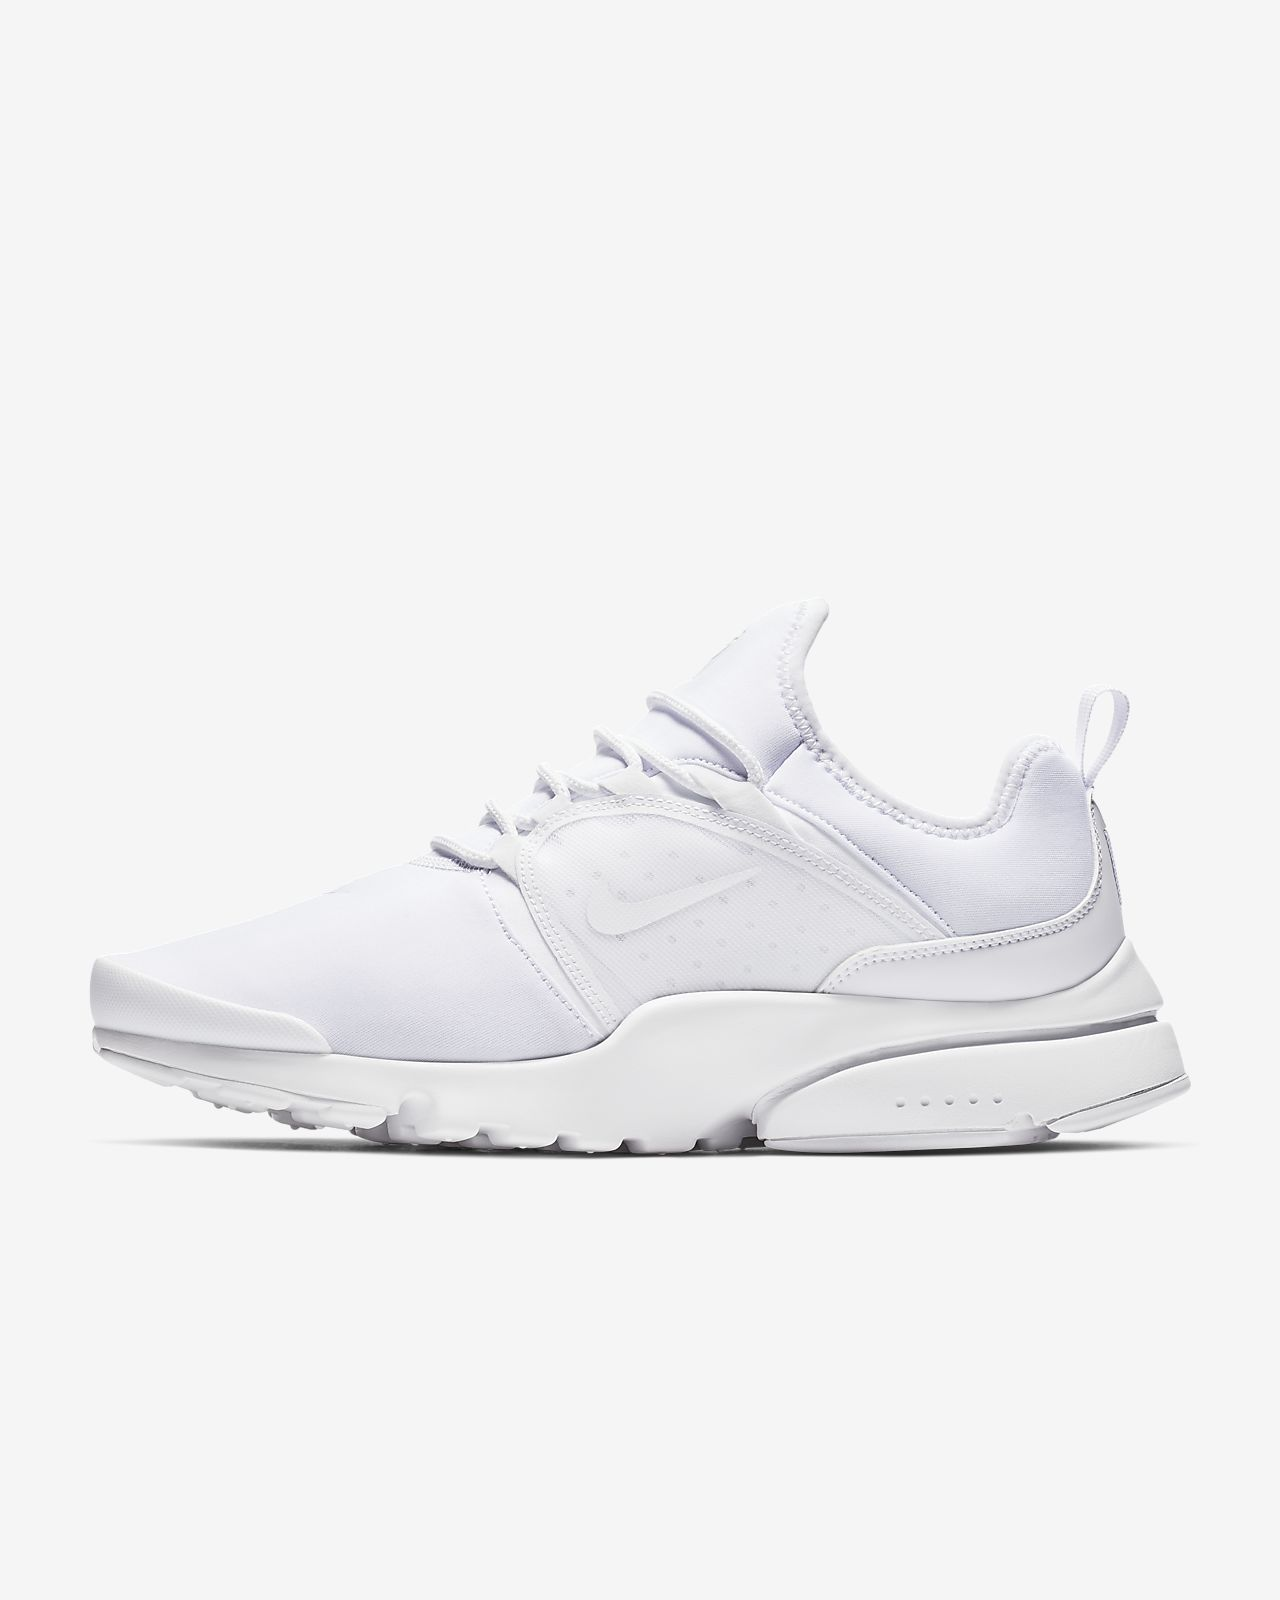 e2aeeb0b93dc Nike Presto Fly World Men s Shoe. Nike.com GB